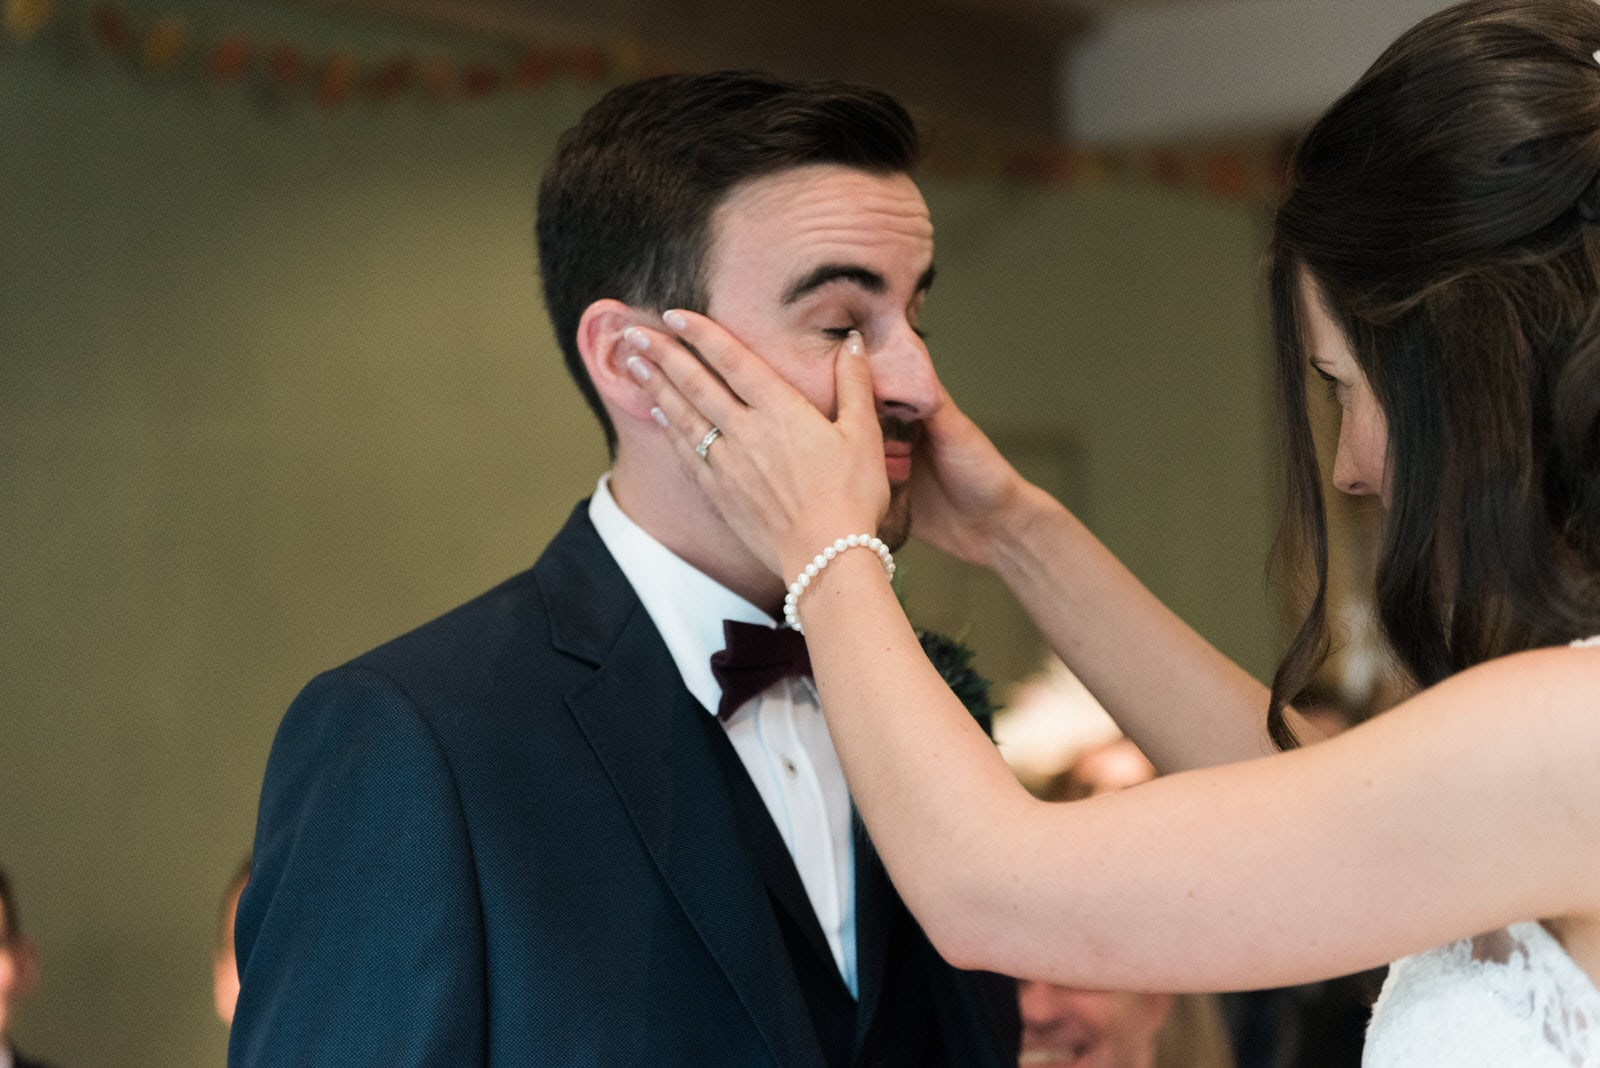 Bride wiping tears away of her groom at Whirlowbrook Hall wedding ceremony